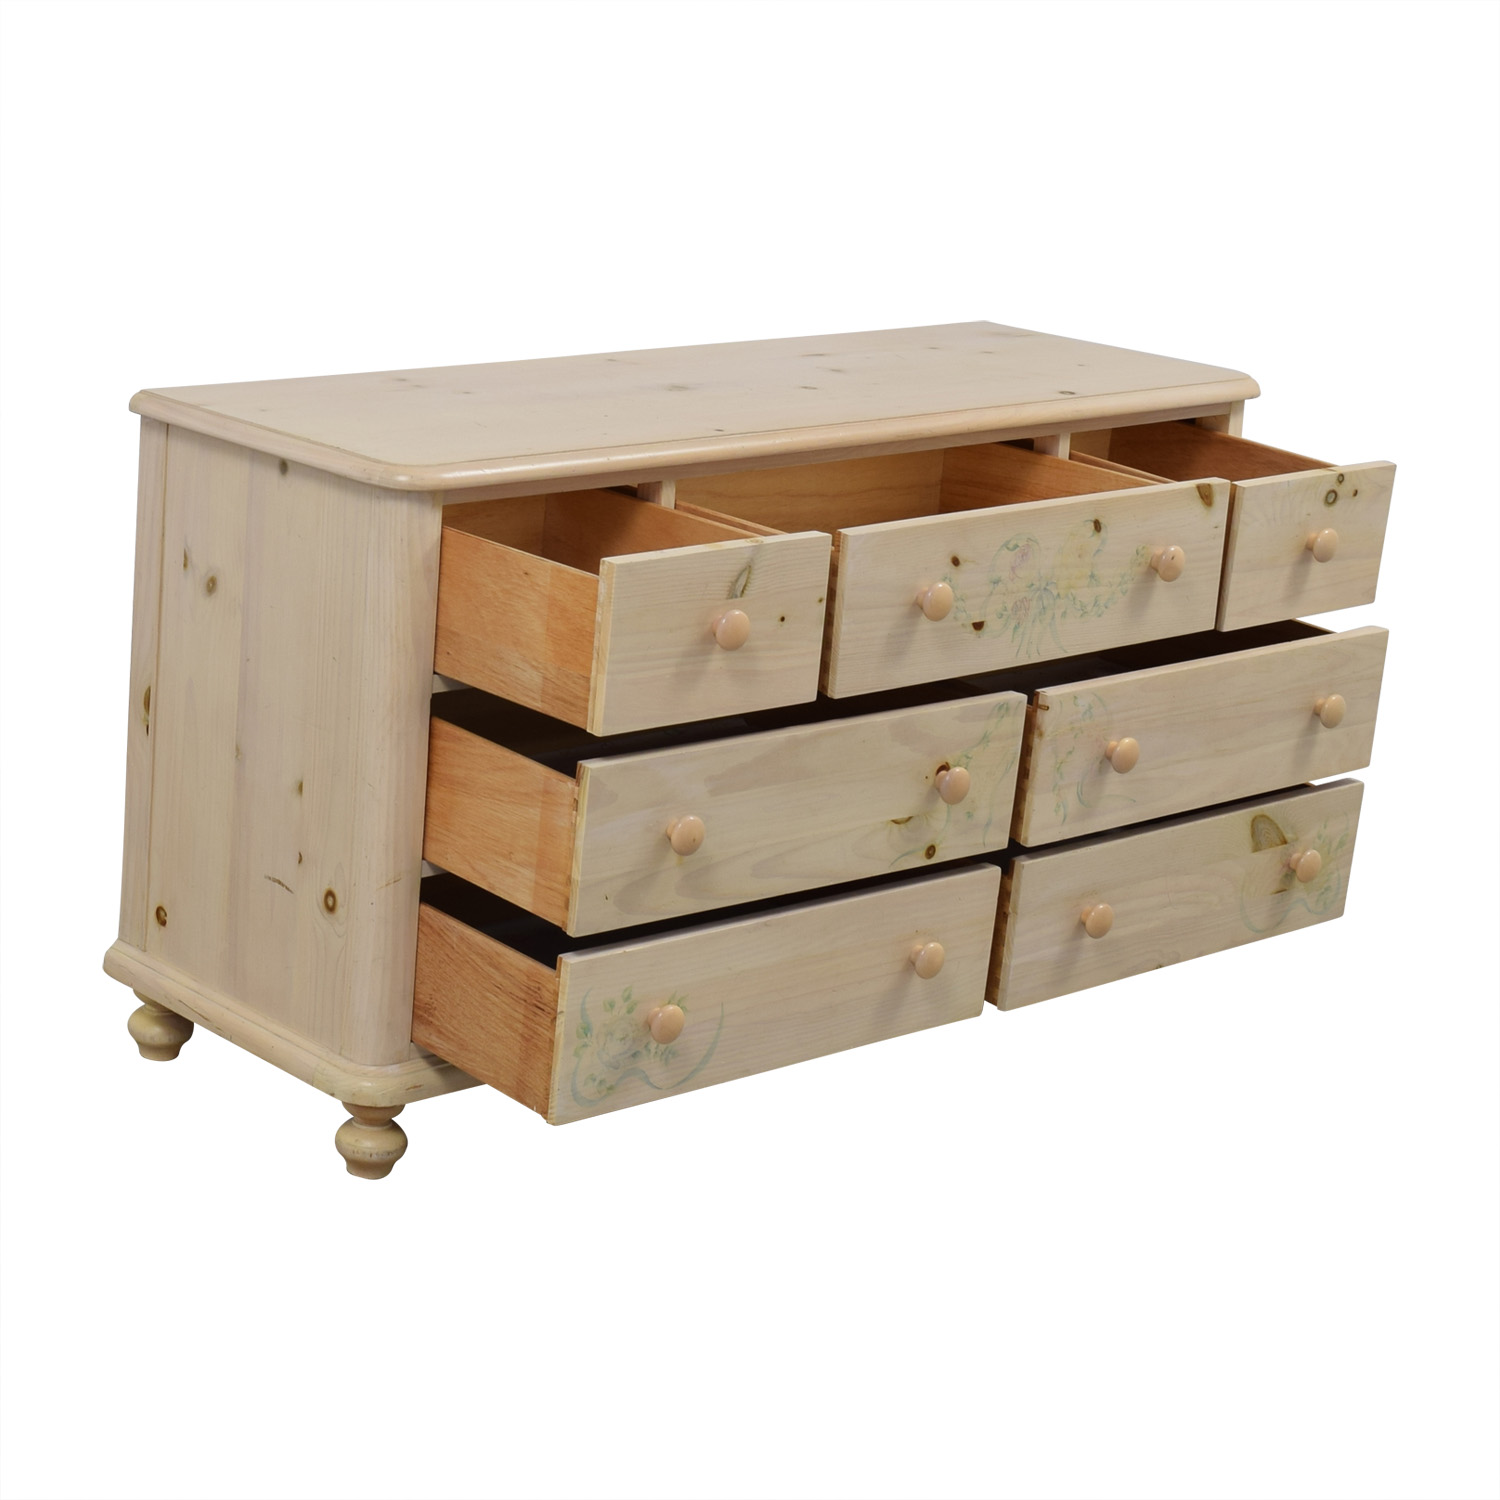 Thomasville Thomasville Natural Wood Seven-Drawer Dresser